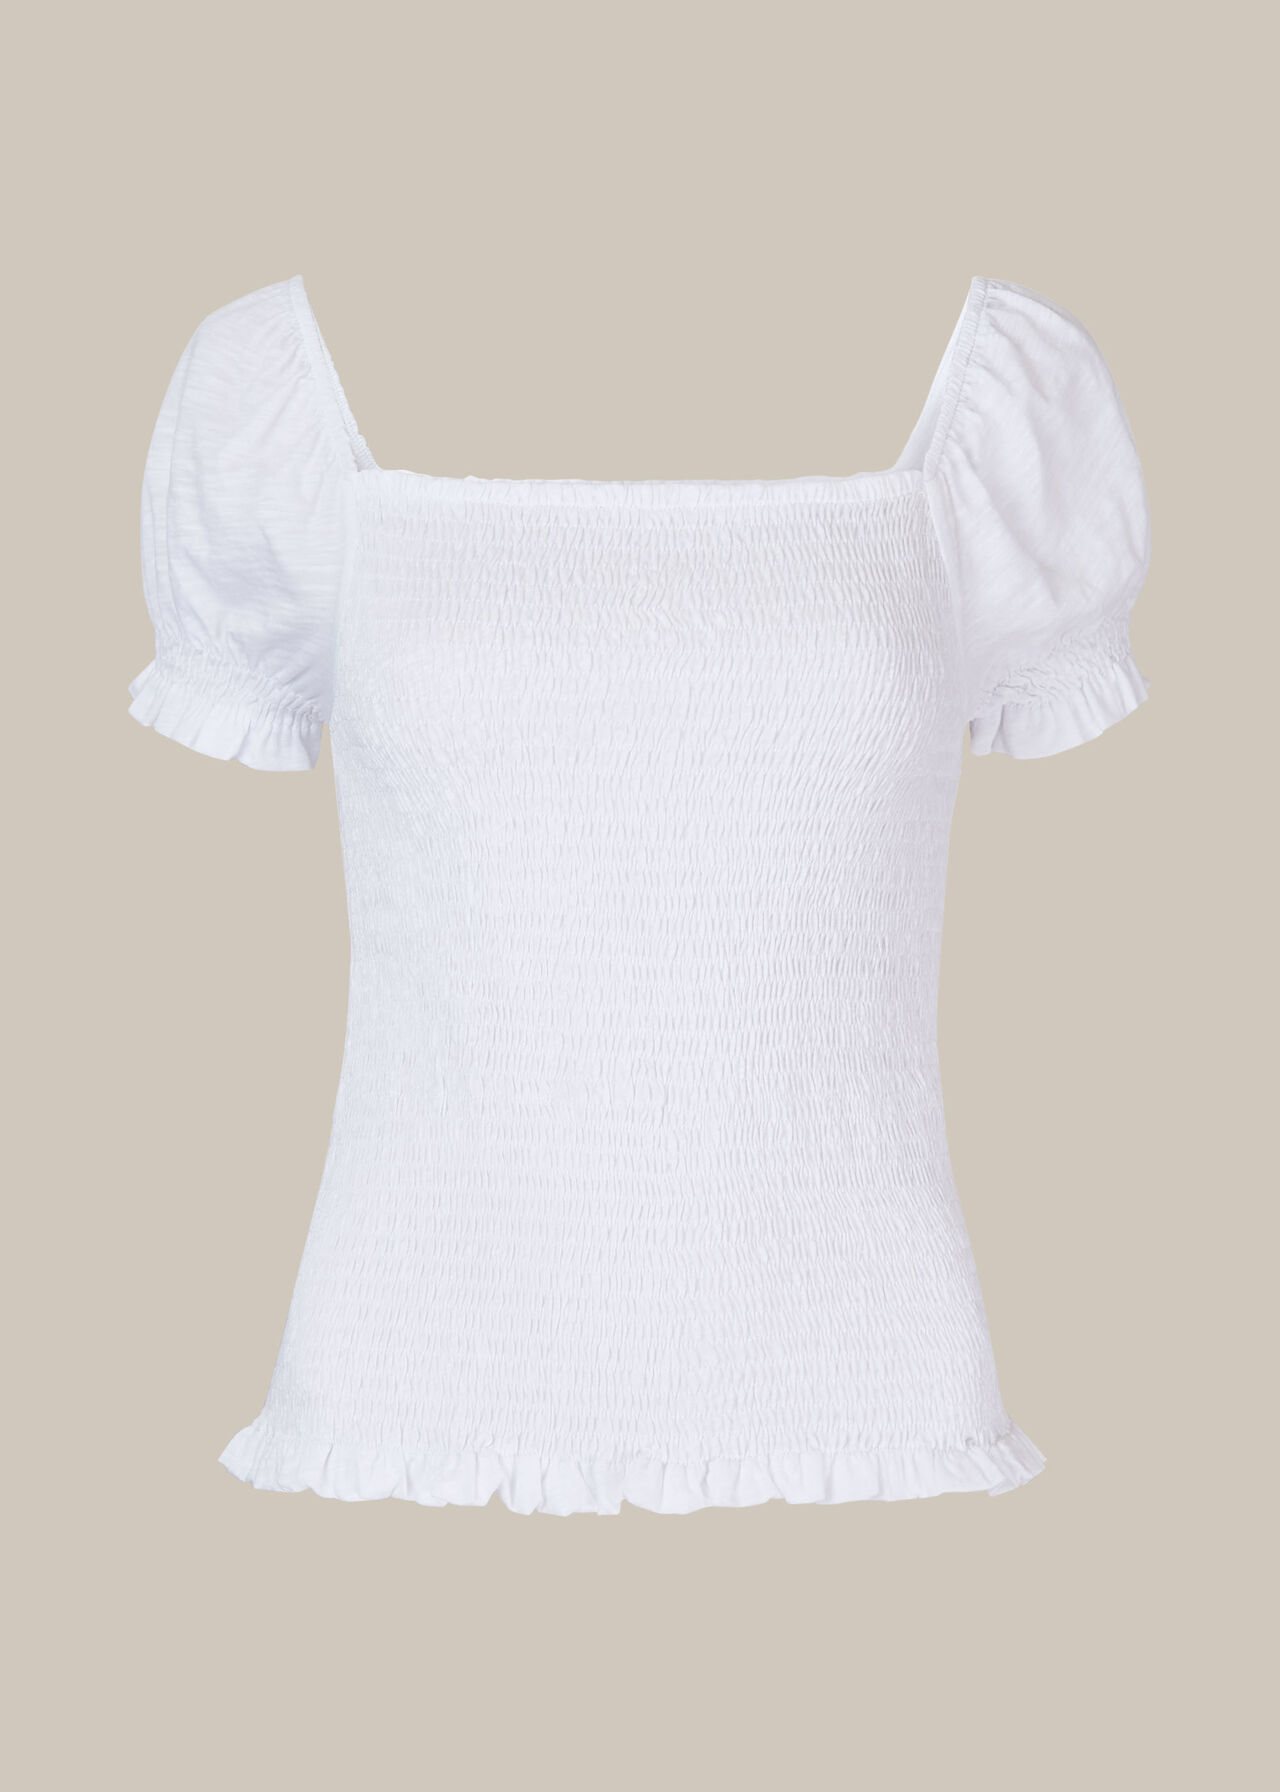 Bex Rouched Frill Top White